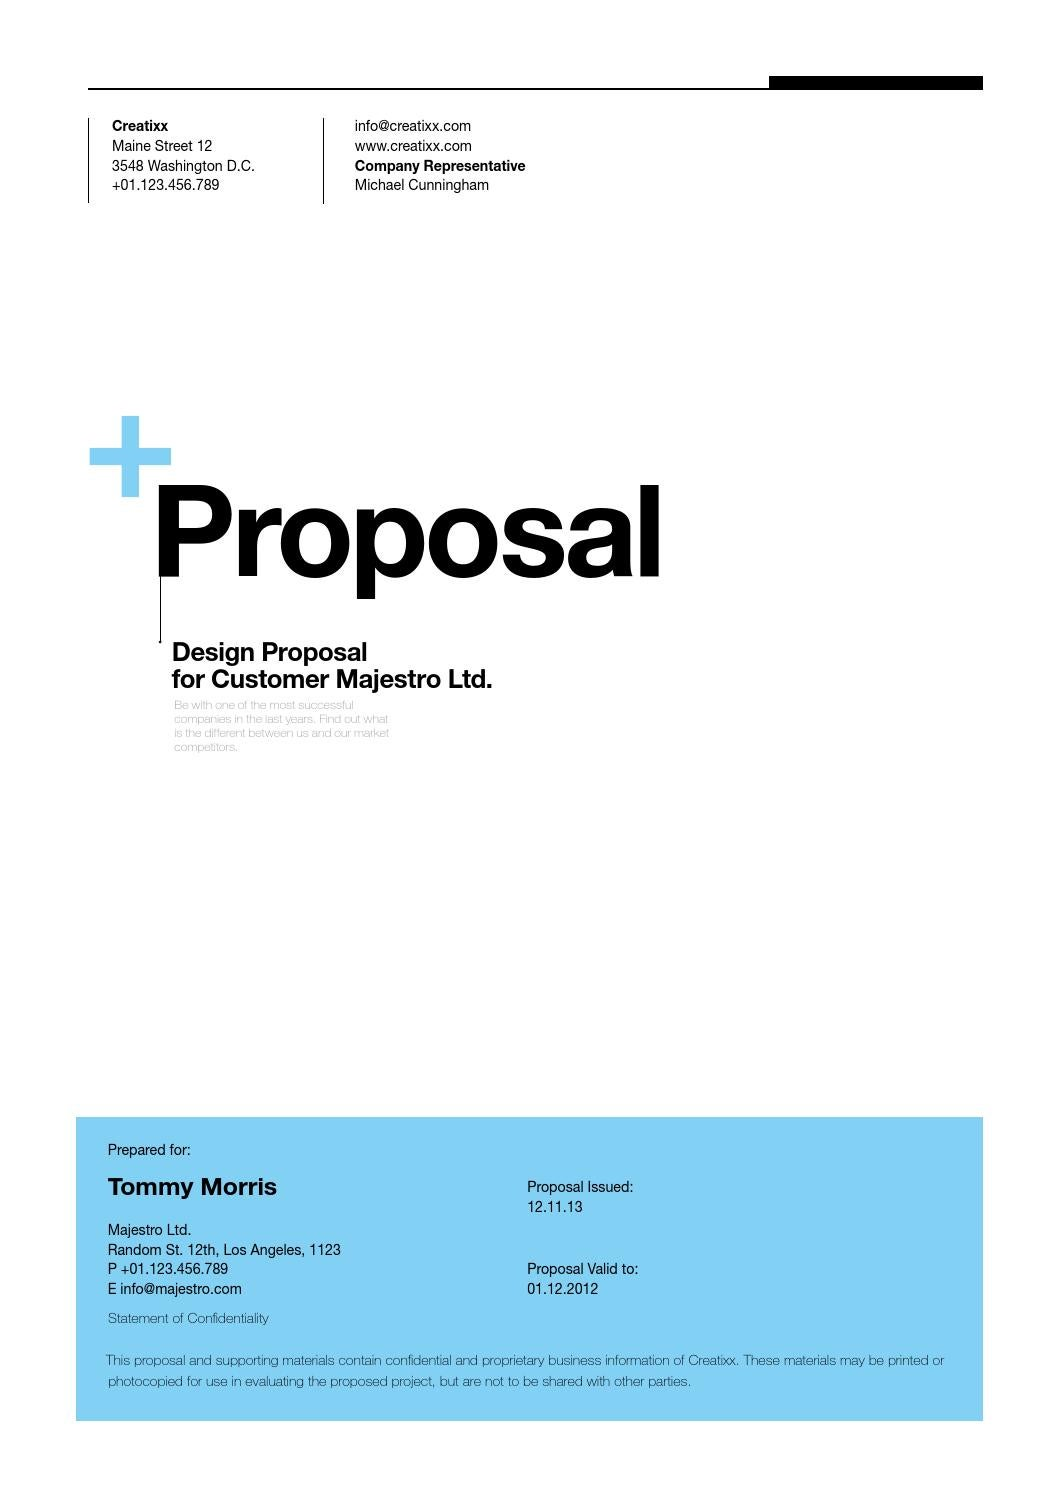 Suisse Design Proposal Template by egotype - issuu